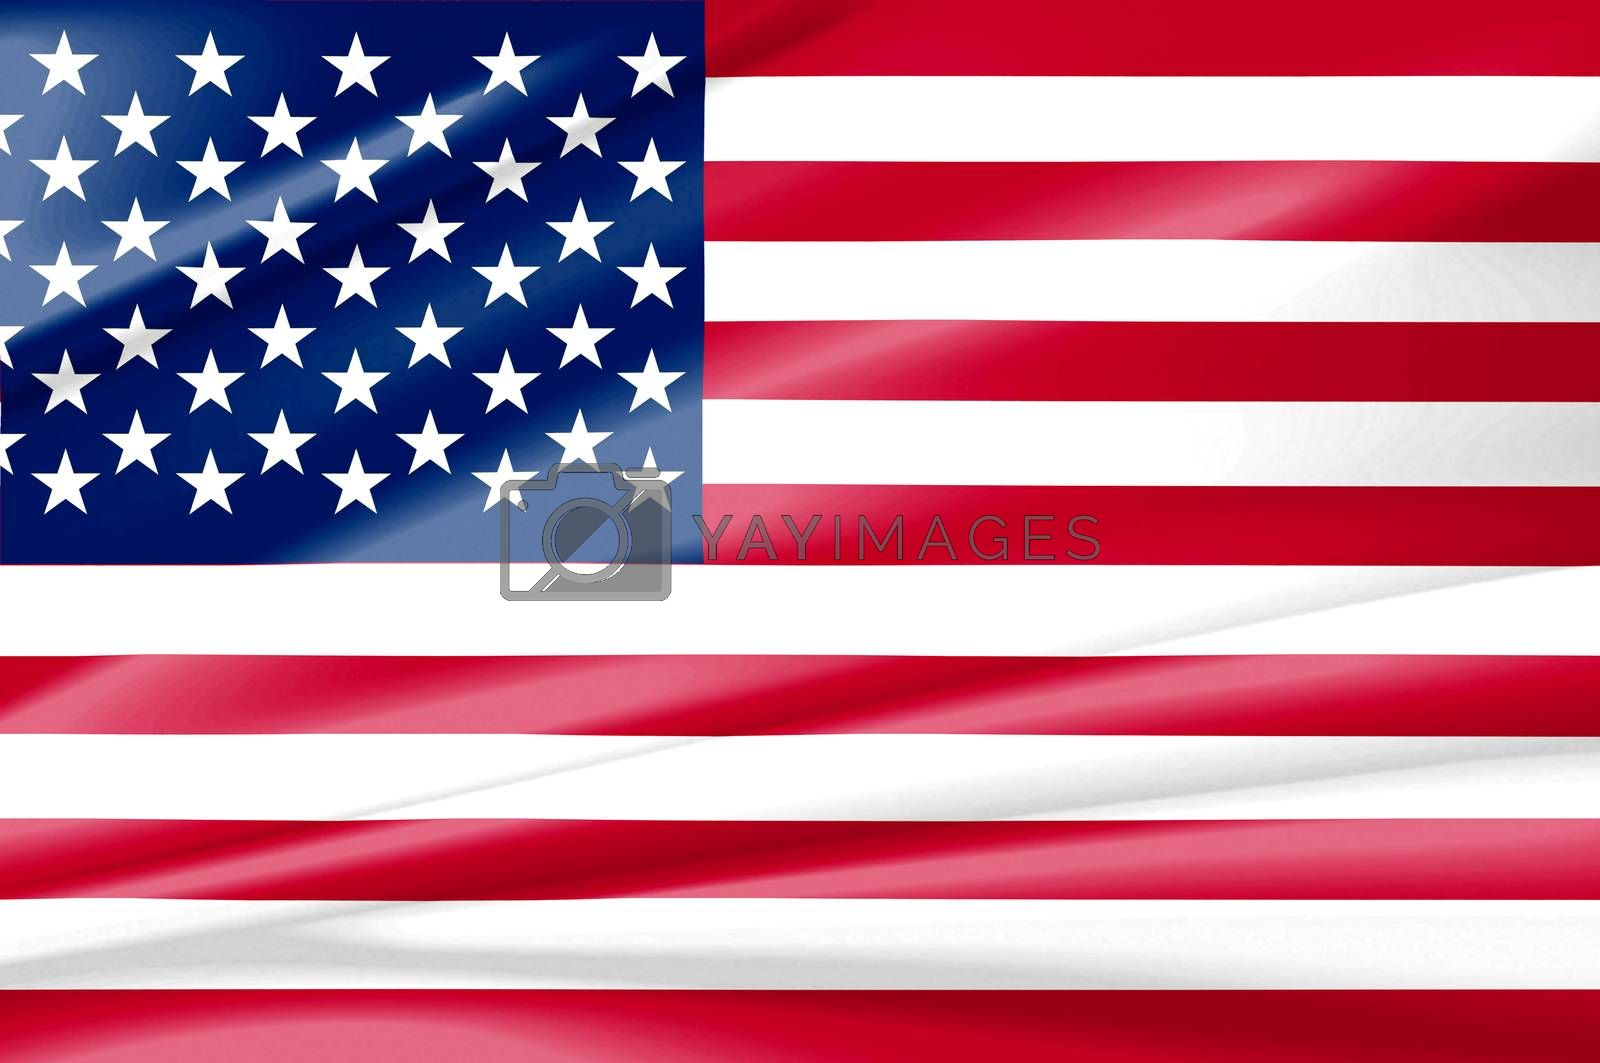 United States of america red white and blue country flag. Beautifully waving star and striped flag USA as a patriotic background.